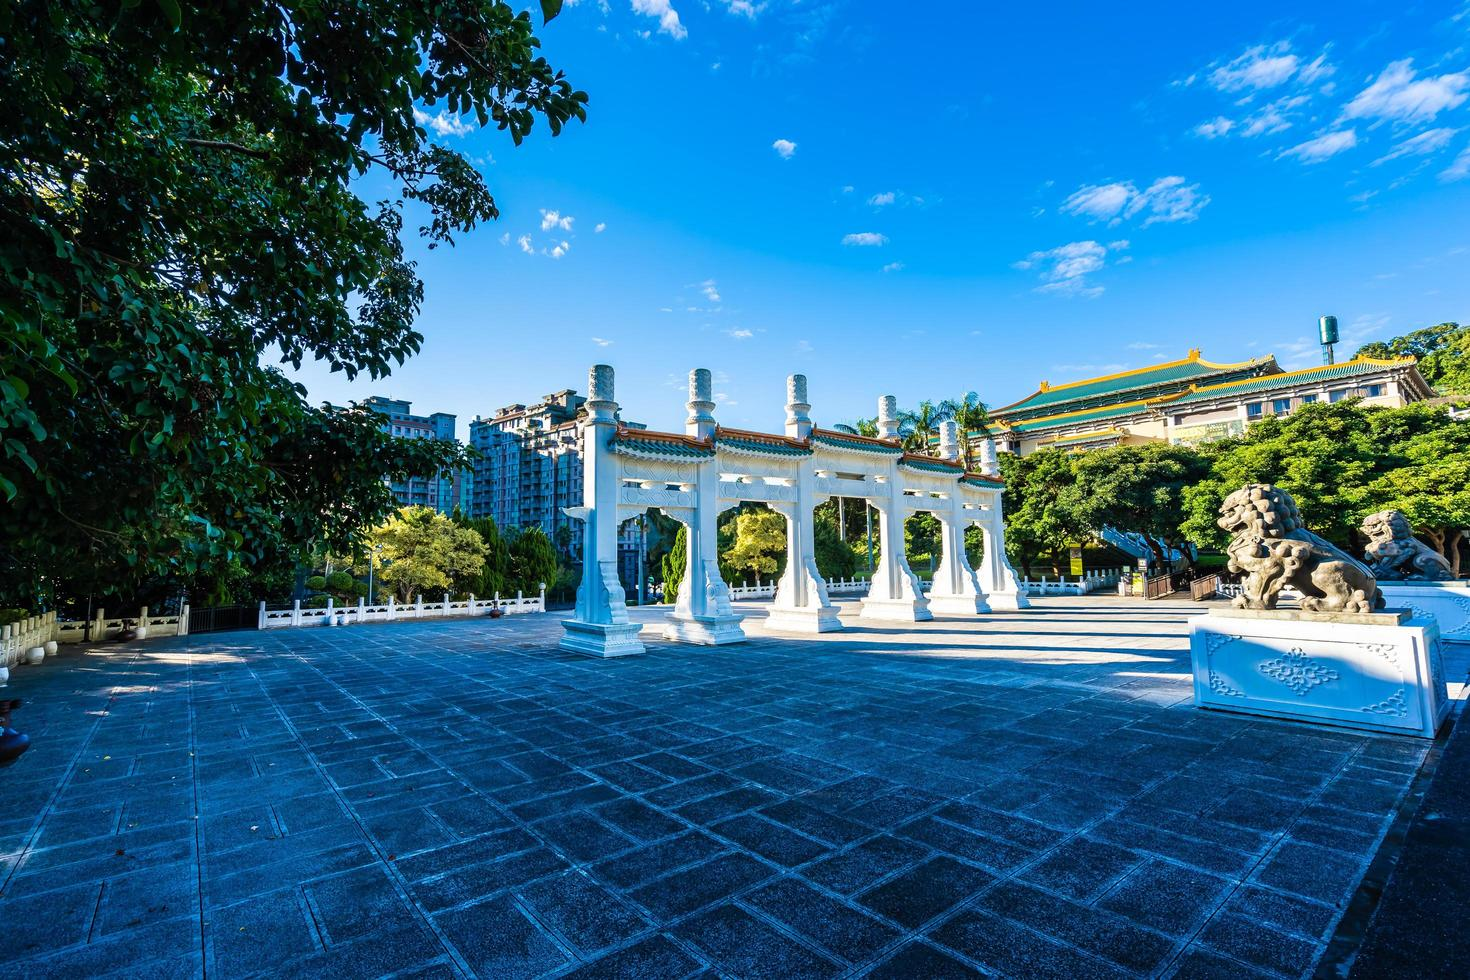 Gate at the National Palace Museum in Taipei City, Taiwan photo